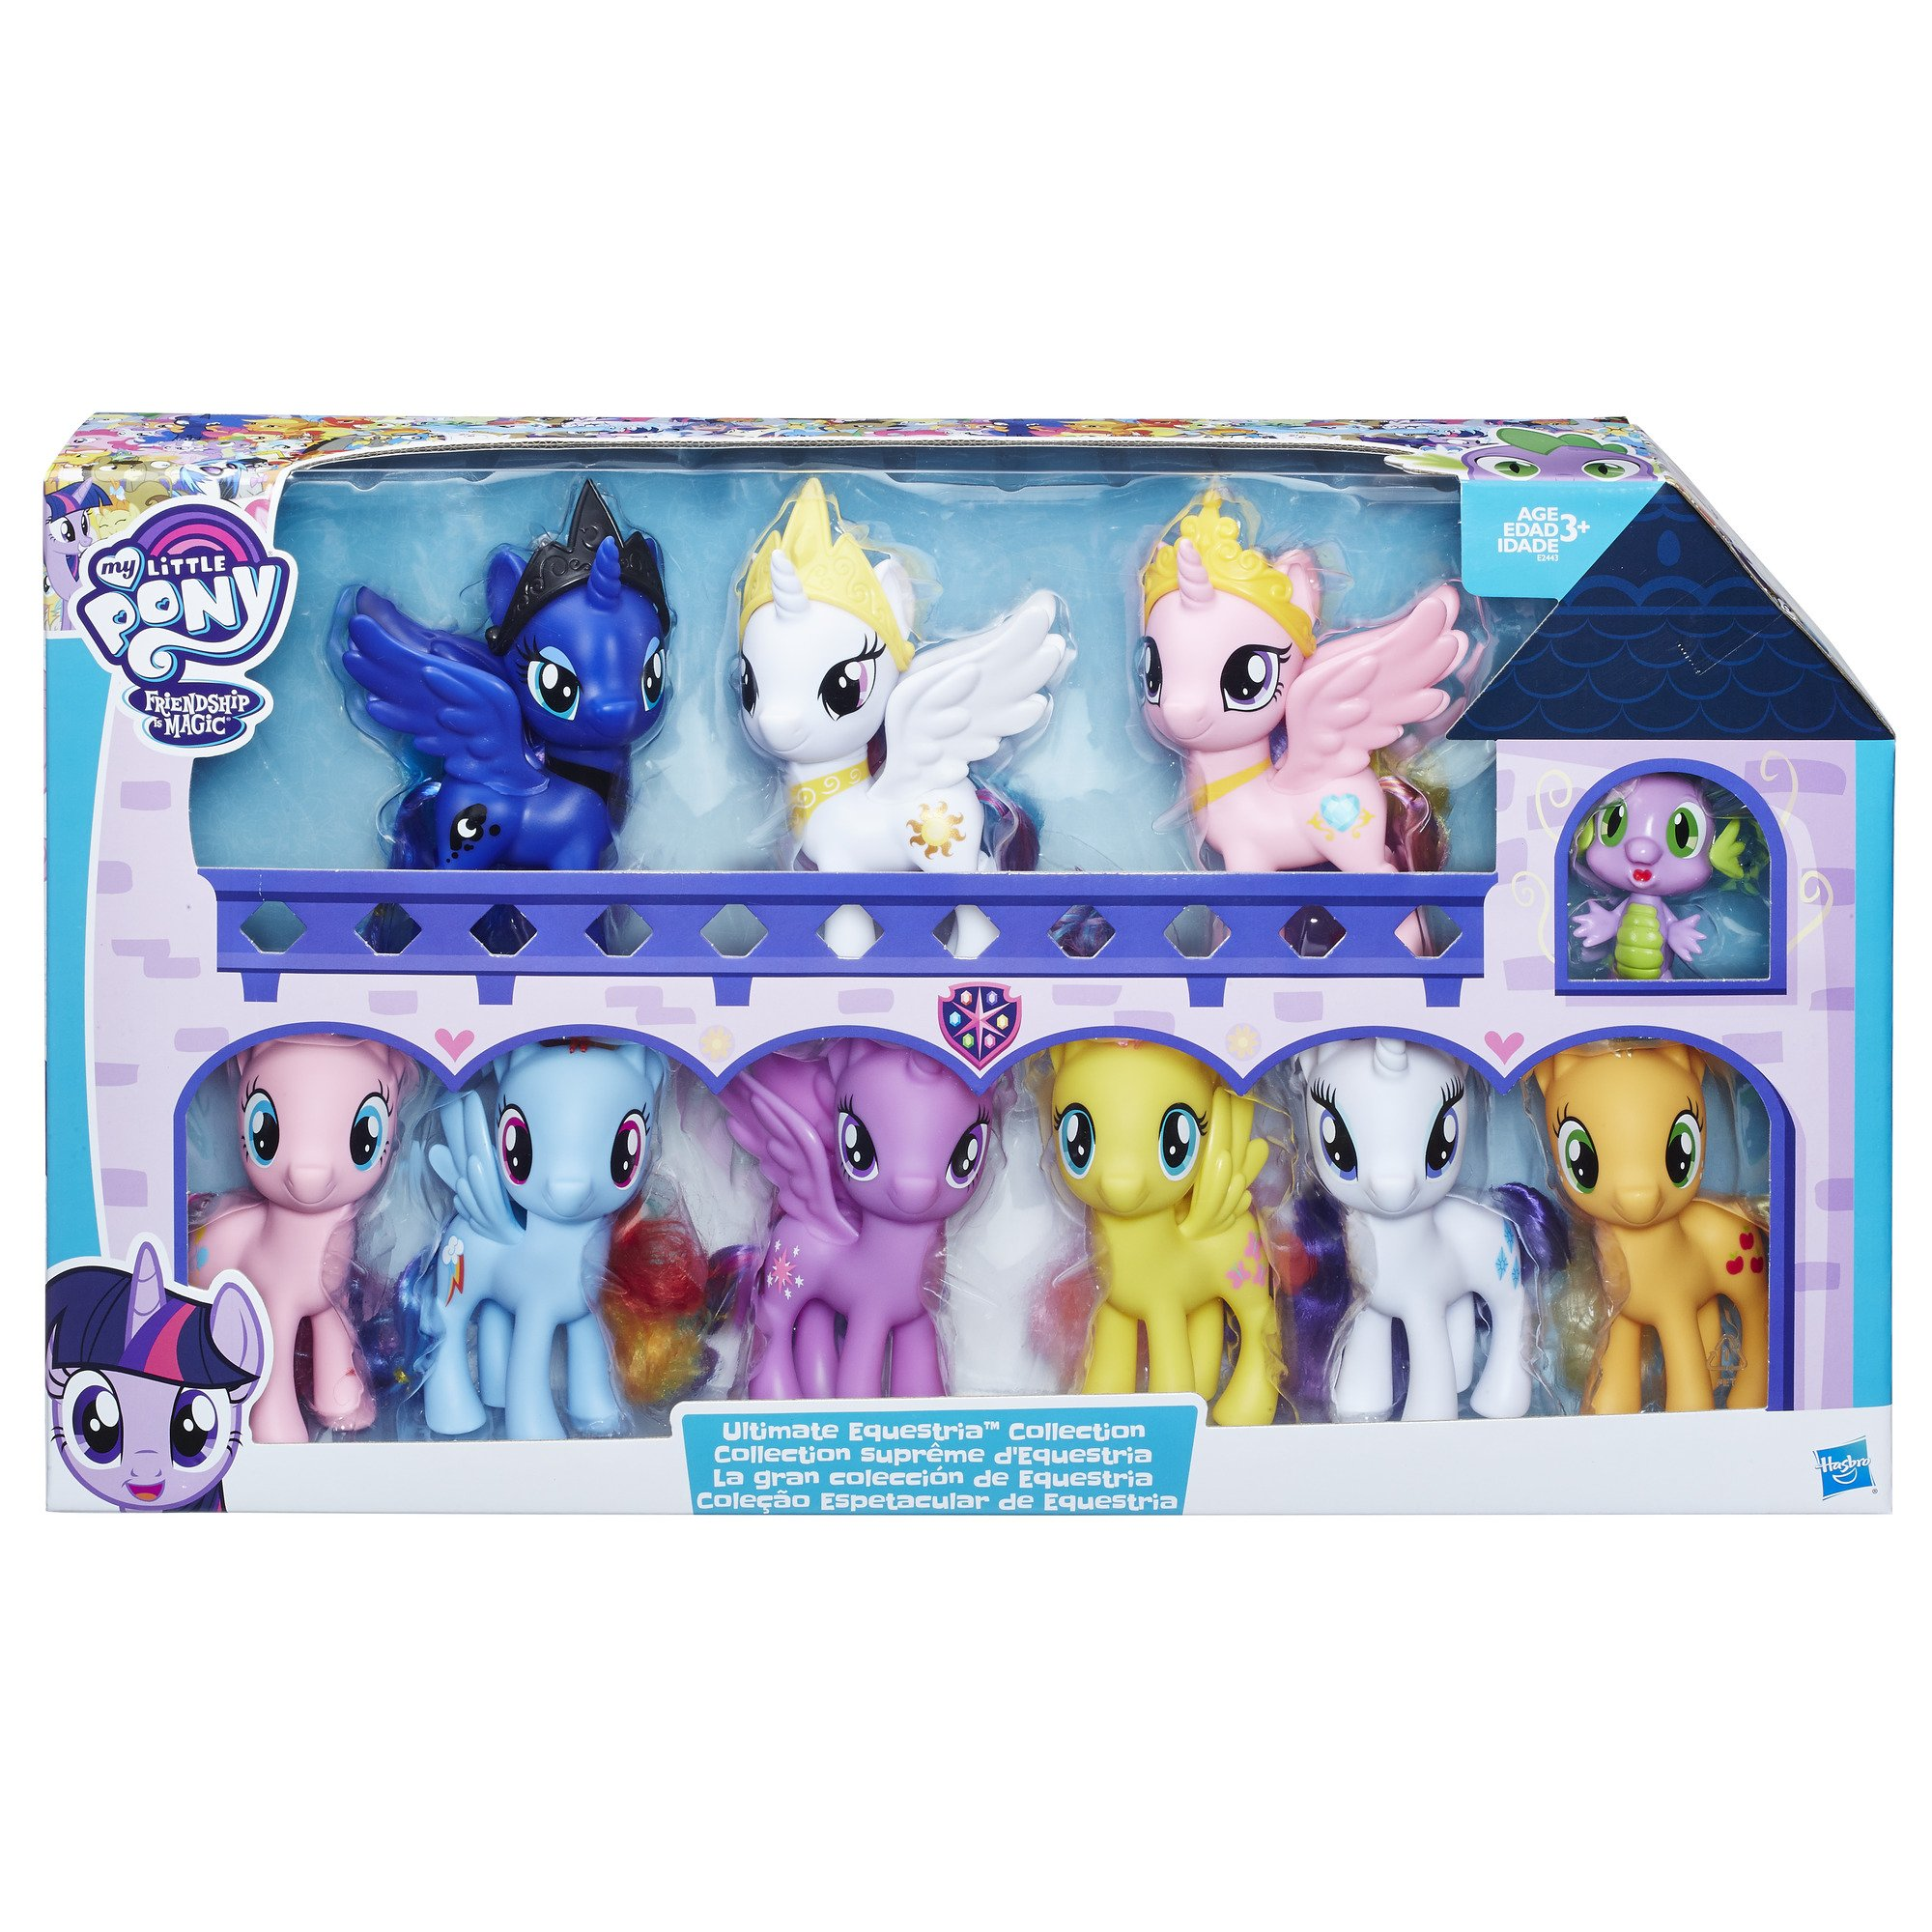 My Little Pony Friendship is Magic Toys Ultimate Equestria Collection - 10 Figure Set Including Mane 6, Princesses, and Spike the Dragon - Kids Ages 3 and Up